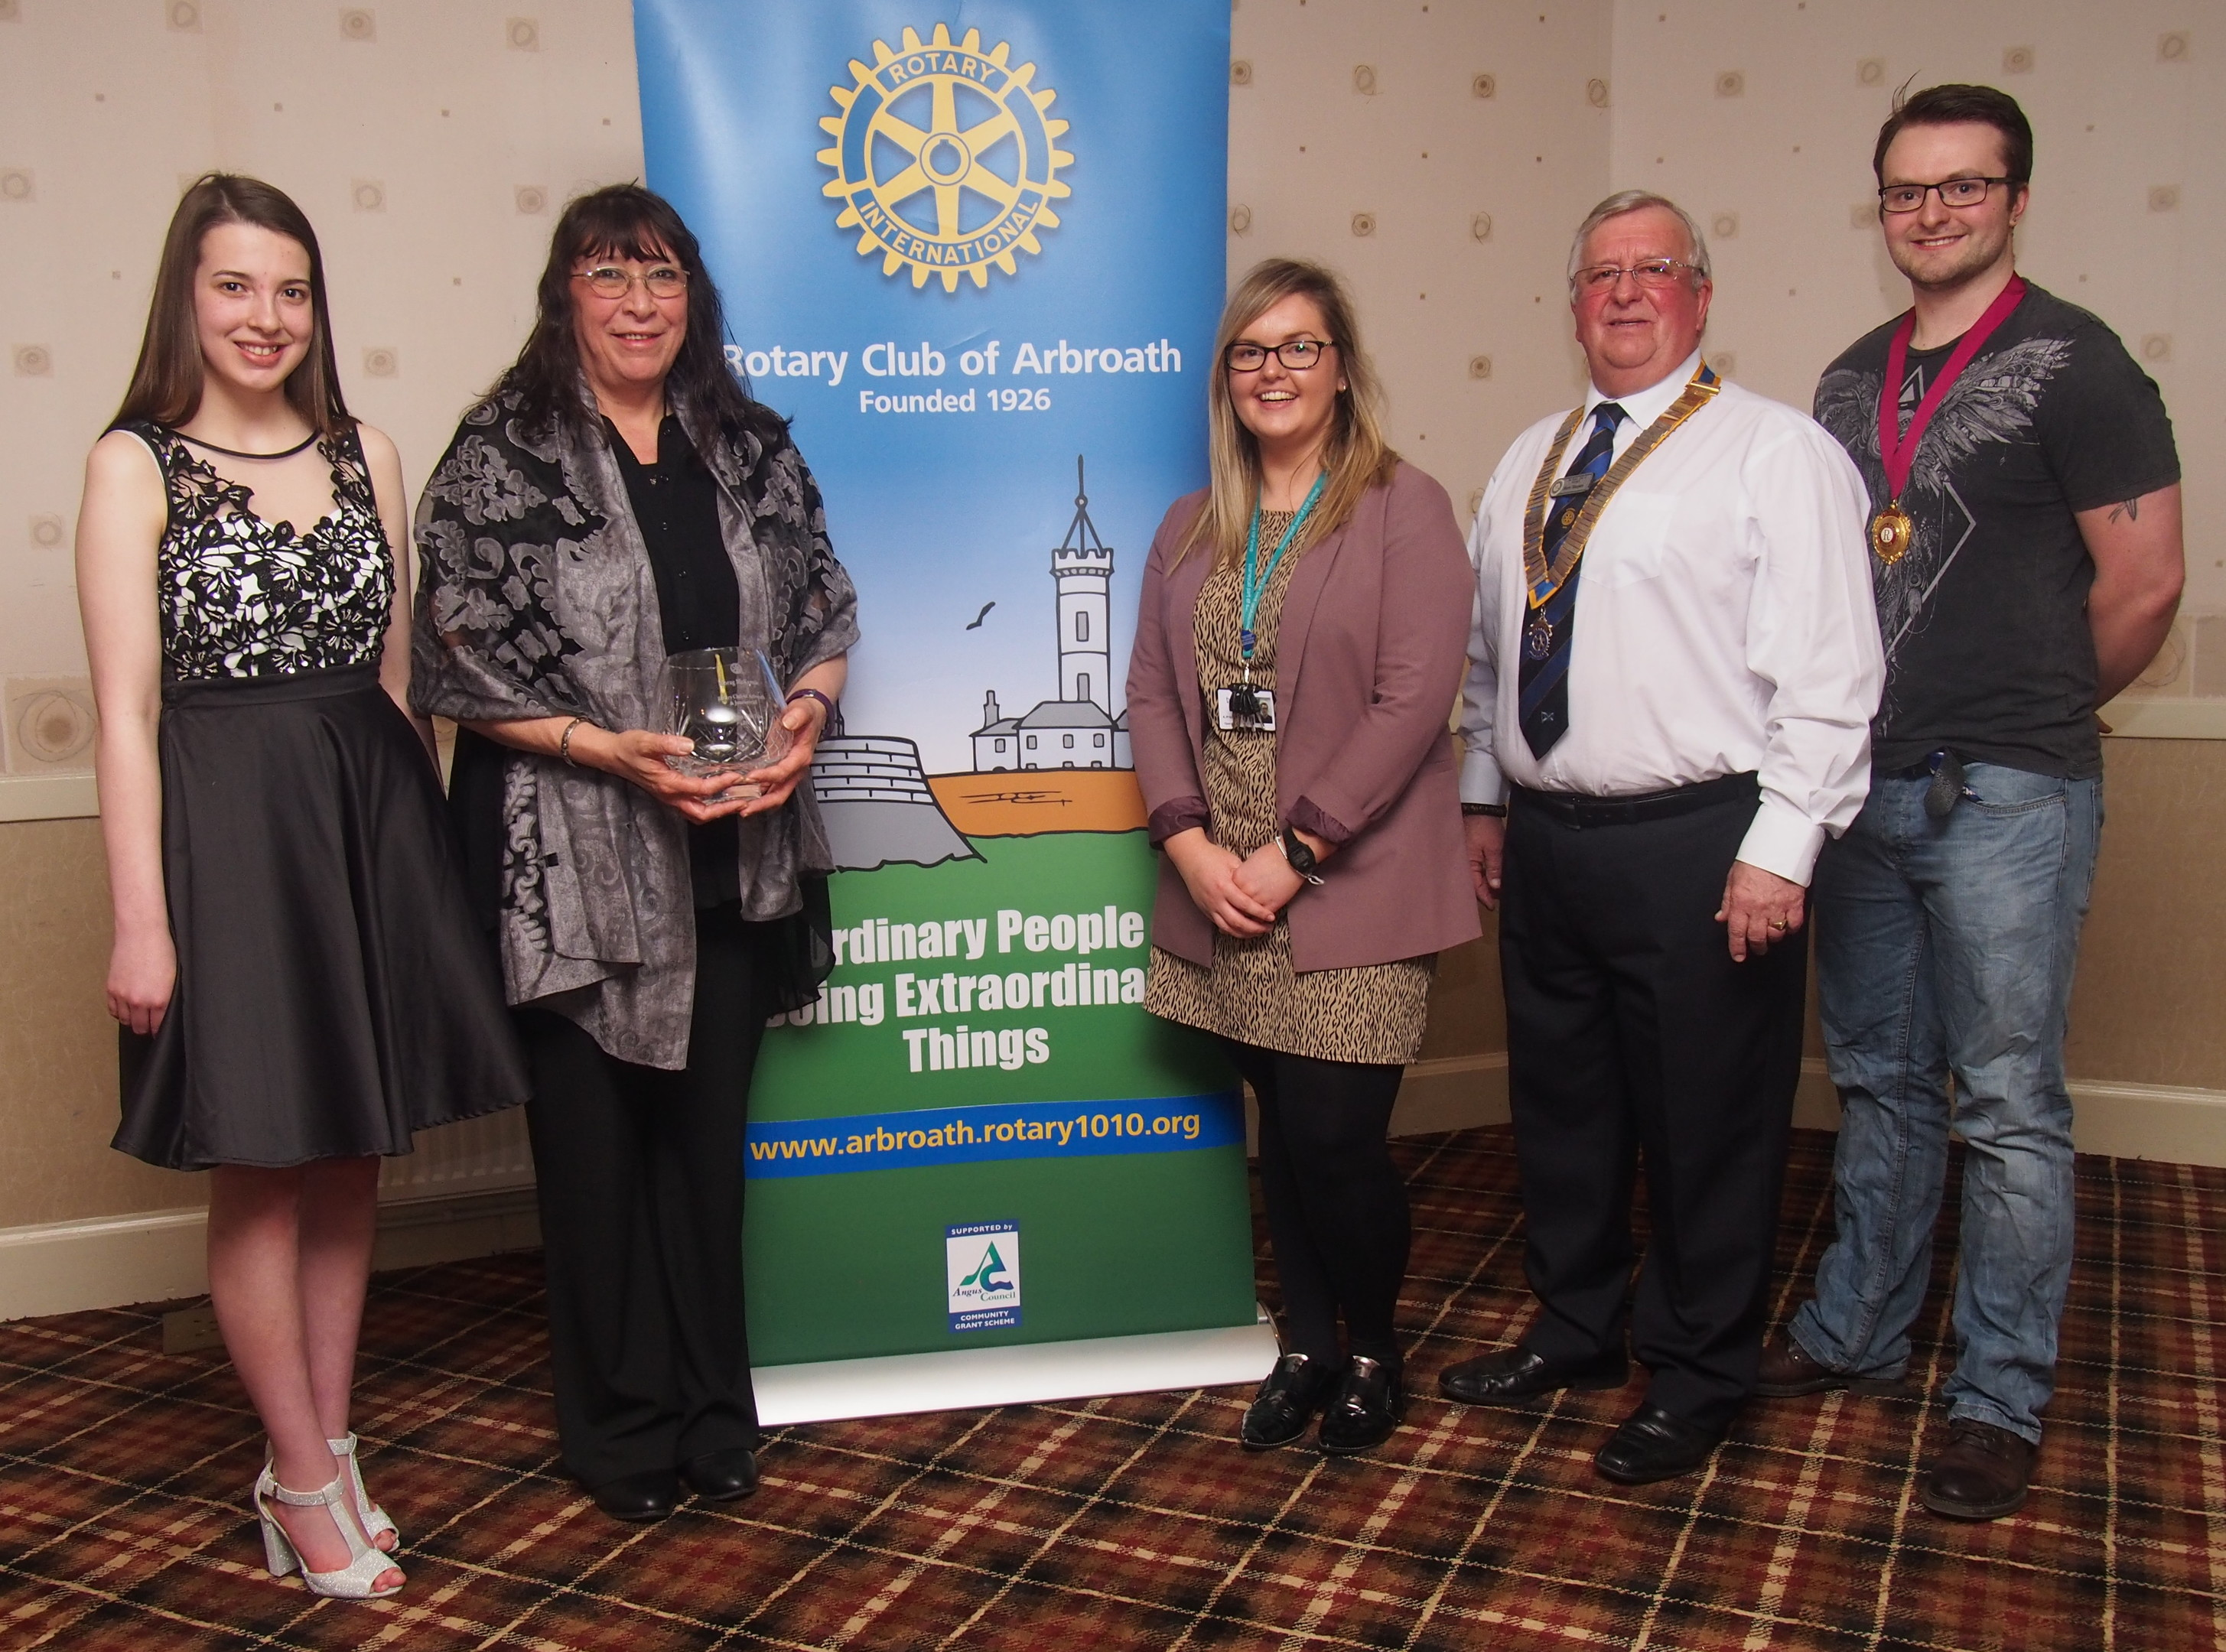 From left — Dionne Geddes, Morag McKenzie, Kerri Price, President Harry Simpson, and Mike Phillips